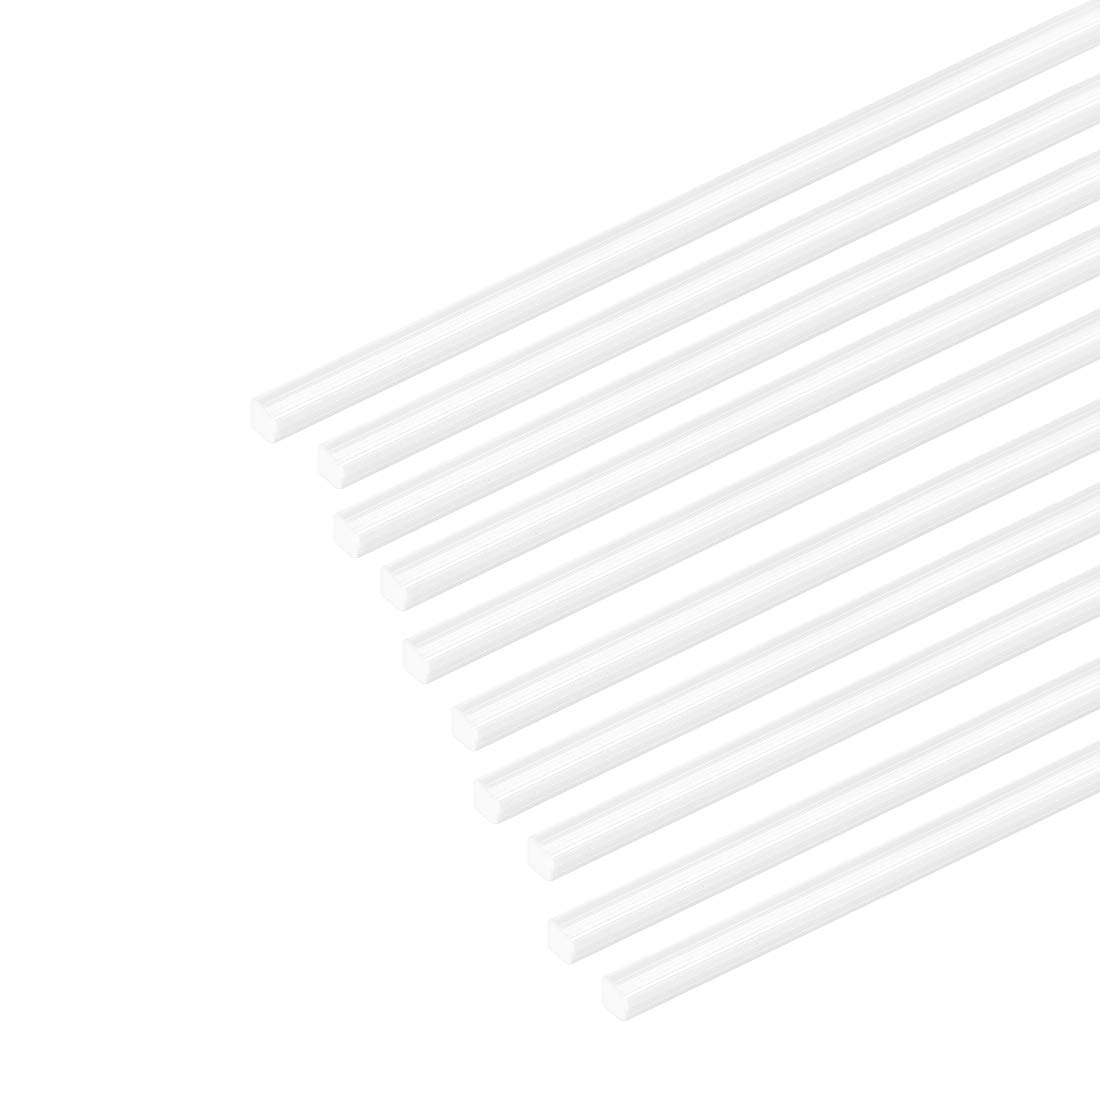 sourcing map 5pcs 0.5mm/×0.5mm/×20 ABS Plastic Bars Rod Square Shape for Architectural Model Making DIY,White